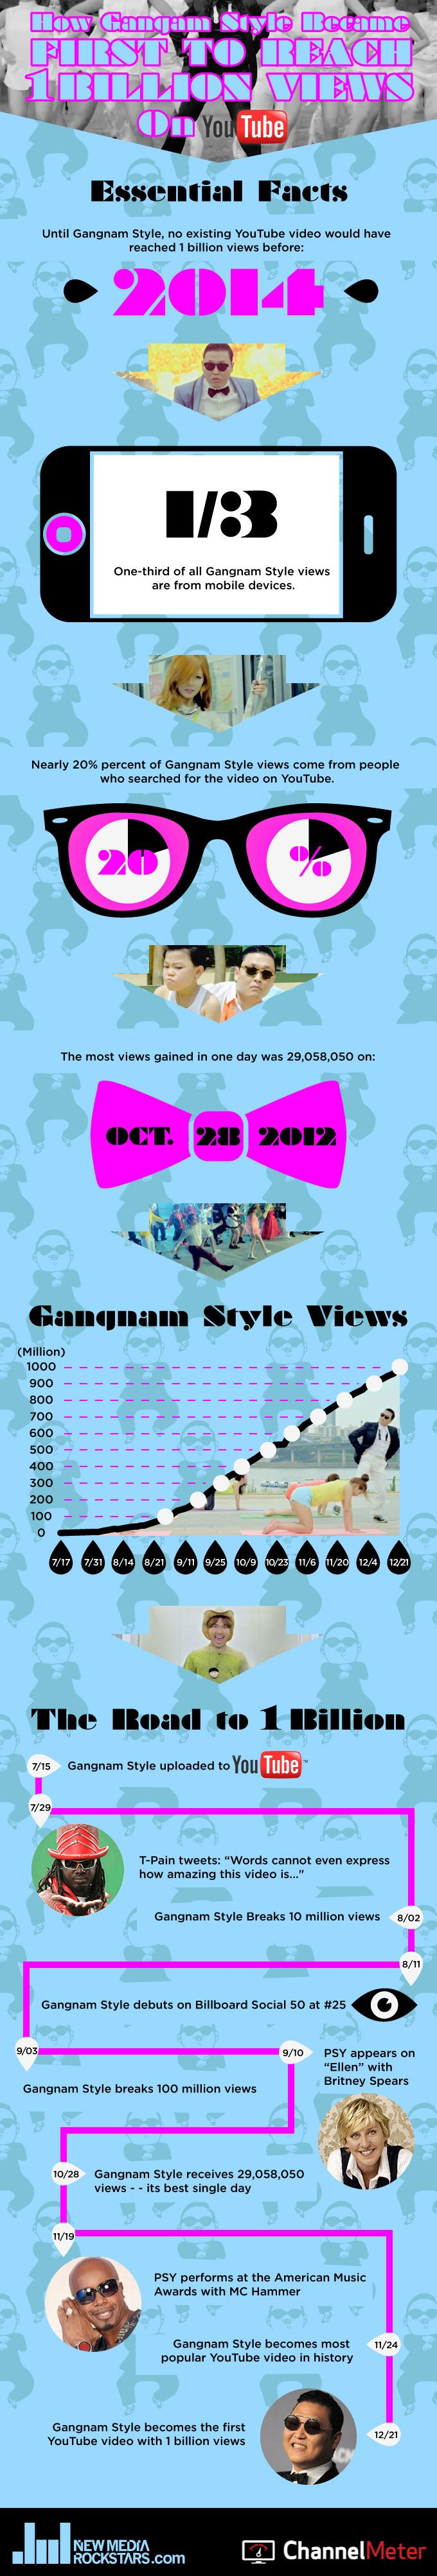 'GANGNAM STYLE' BECOMES FIRST